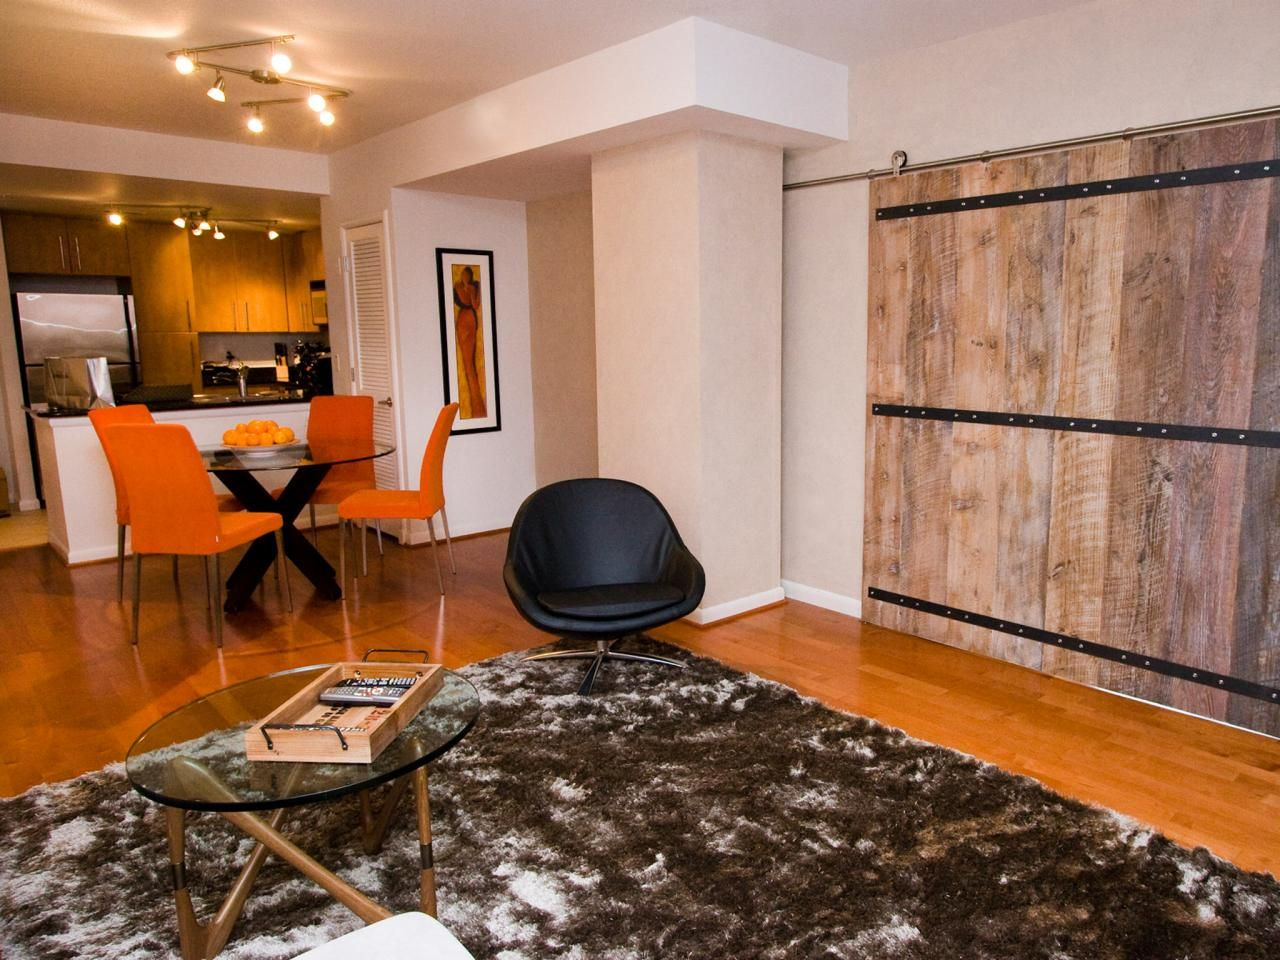 A sliding barn door leads into this shared transitional living room and dining room space. A shaggy area rug defines the living room area with a nearby dining table and bright orange chairs that provide a colorful spot to enjoy a meal.